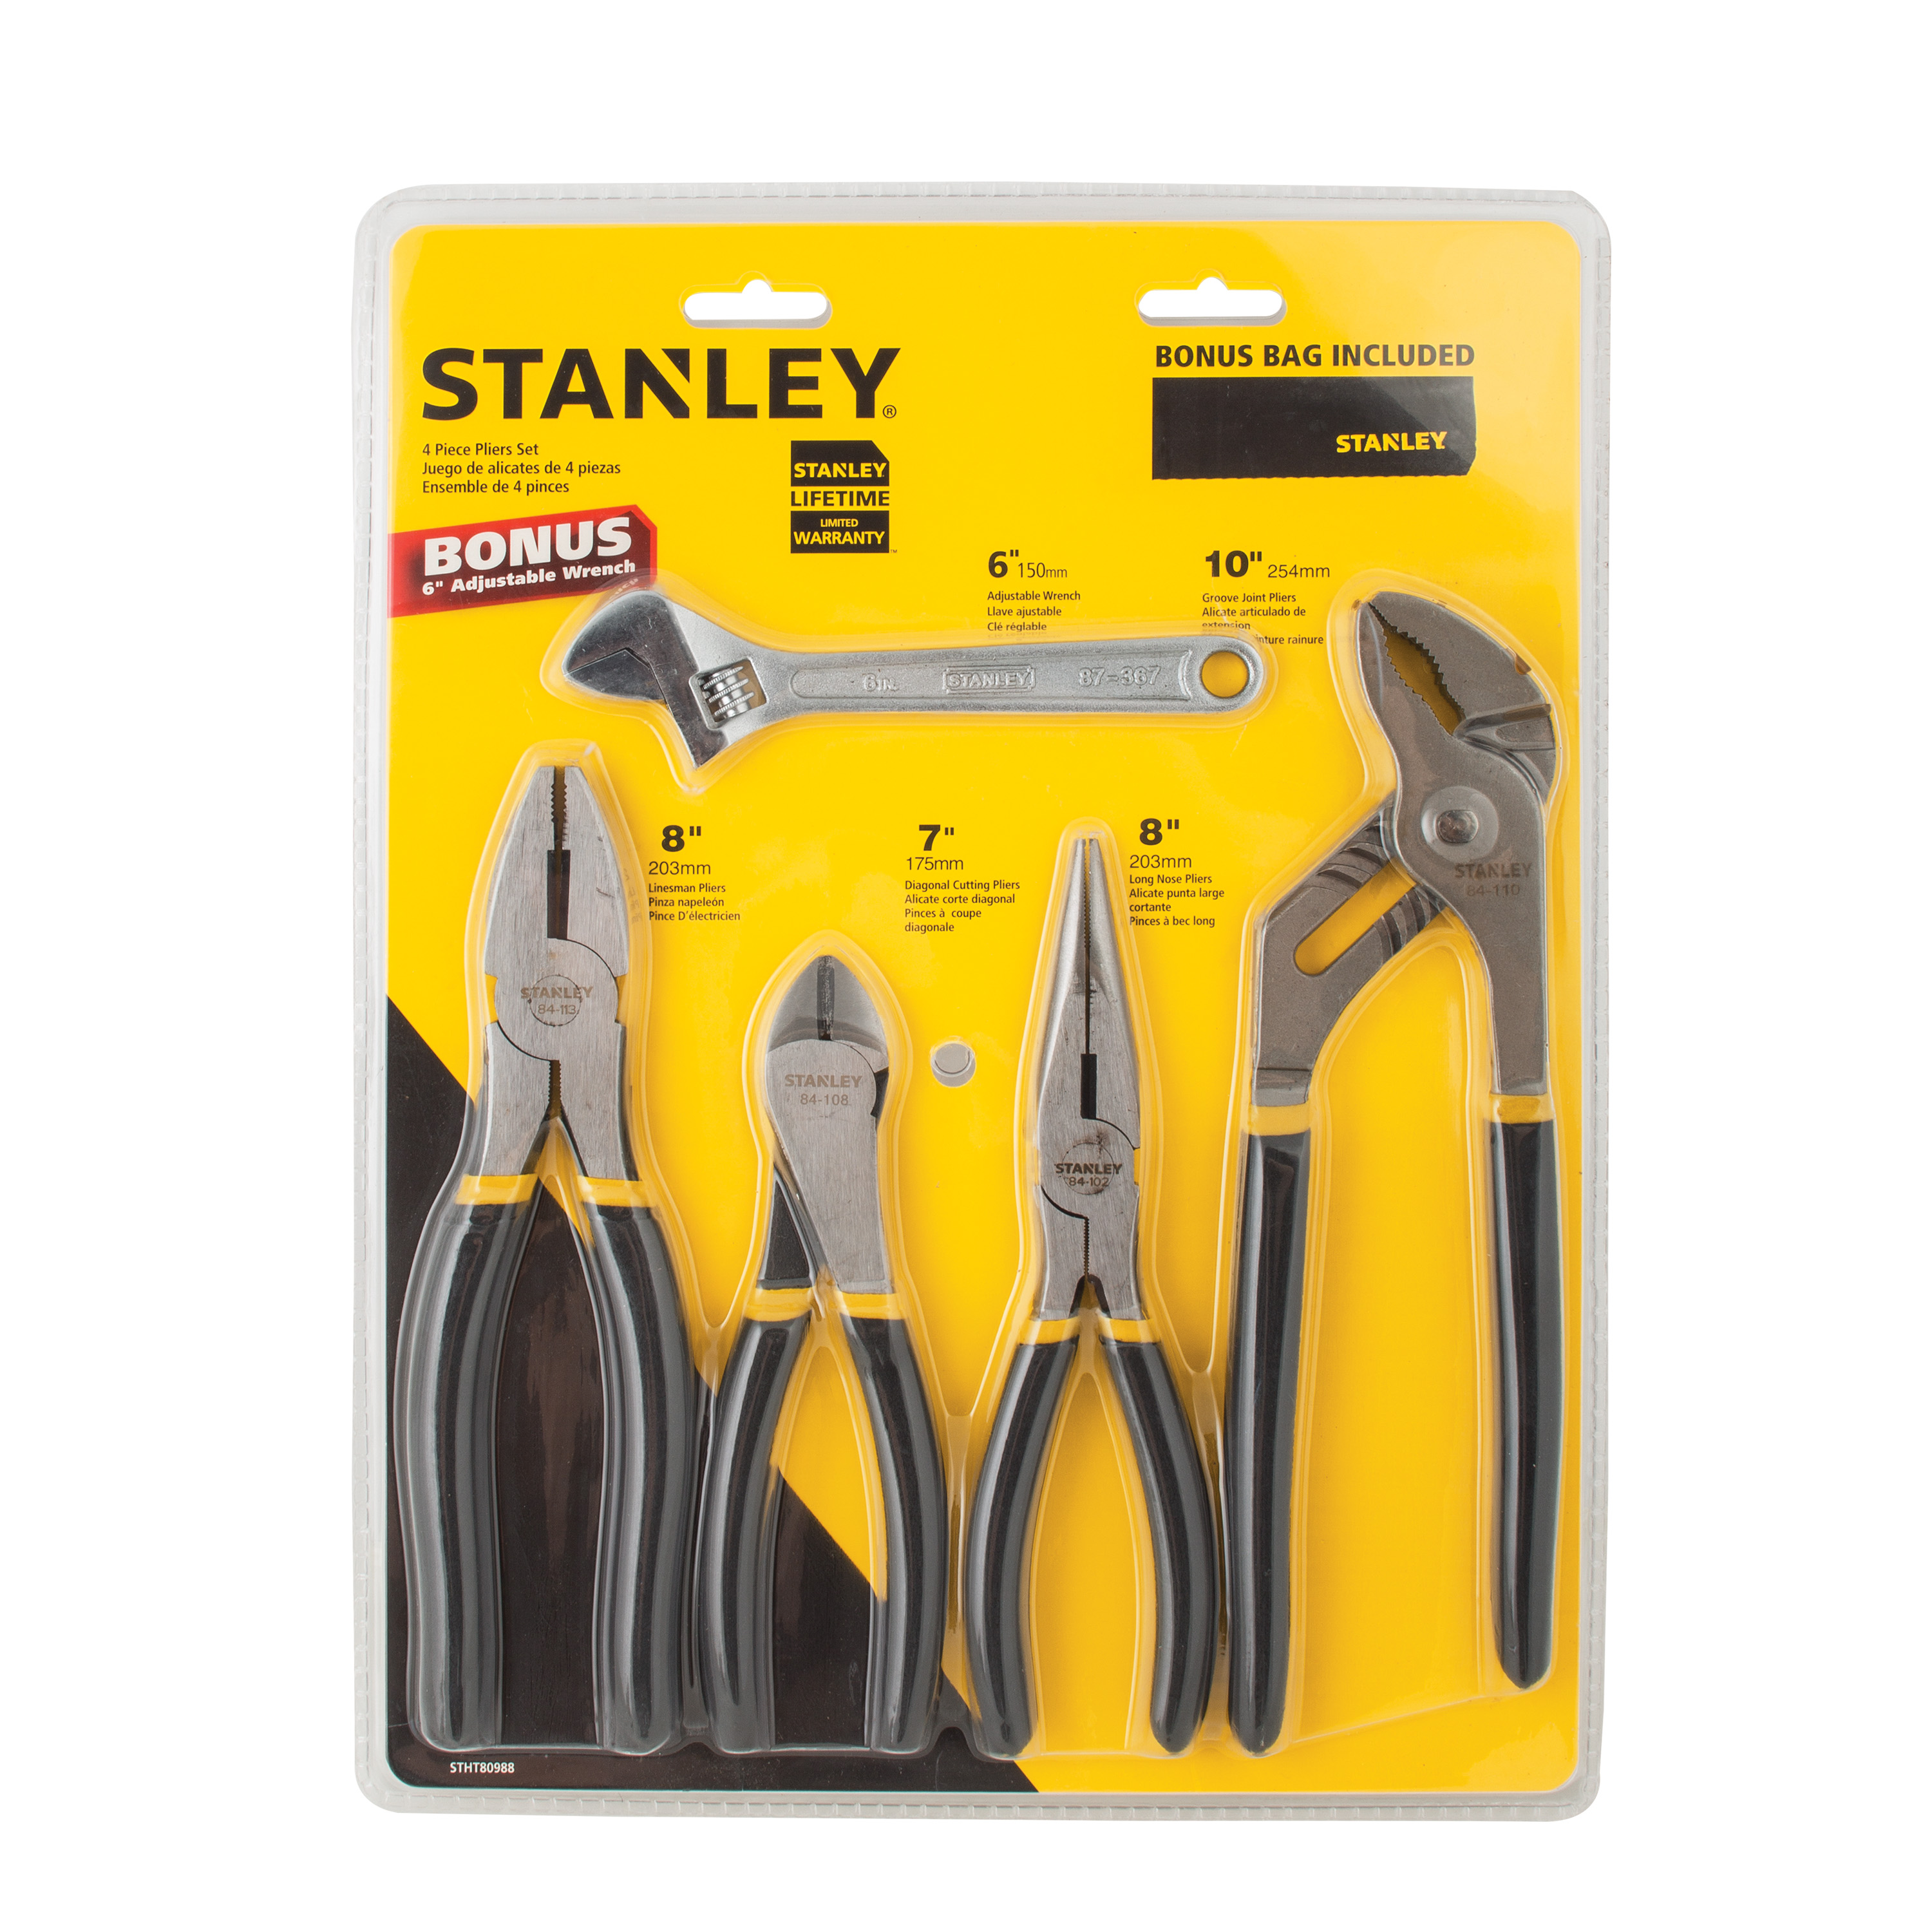 "STANLEY STHT80988WMT 4pc Plier Set With Bonus 6"" Adjustable Wrench"